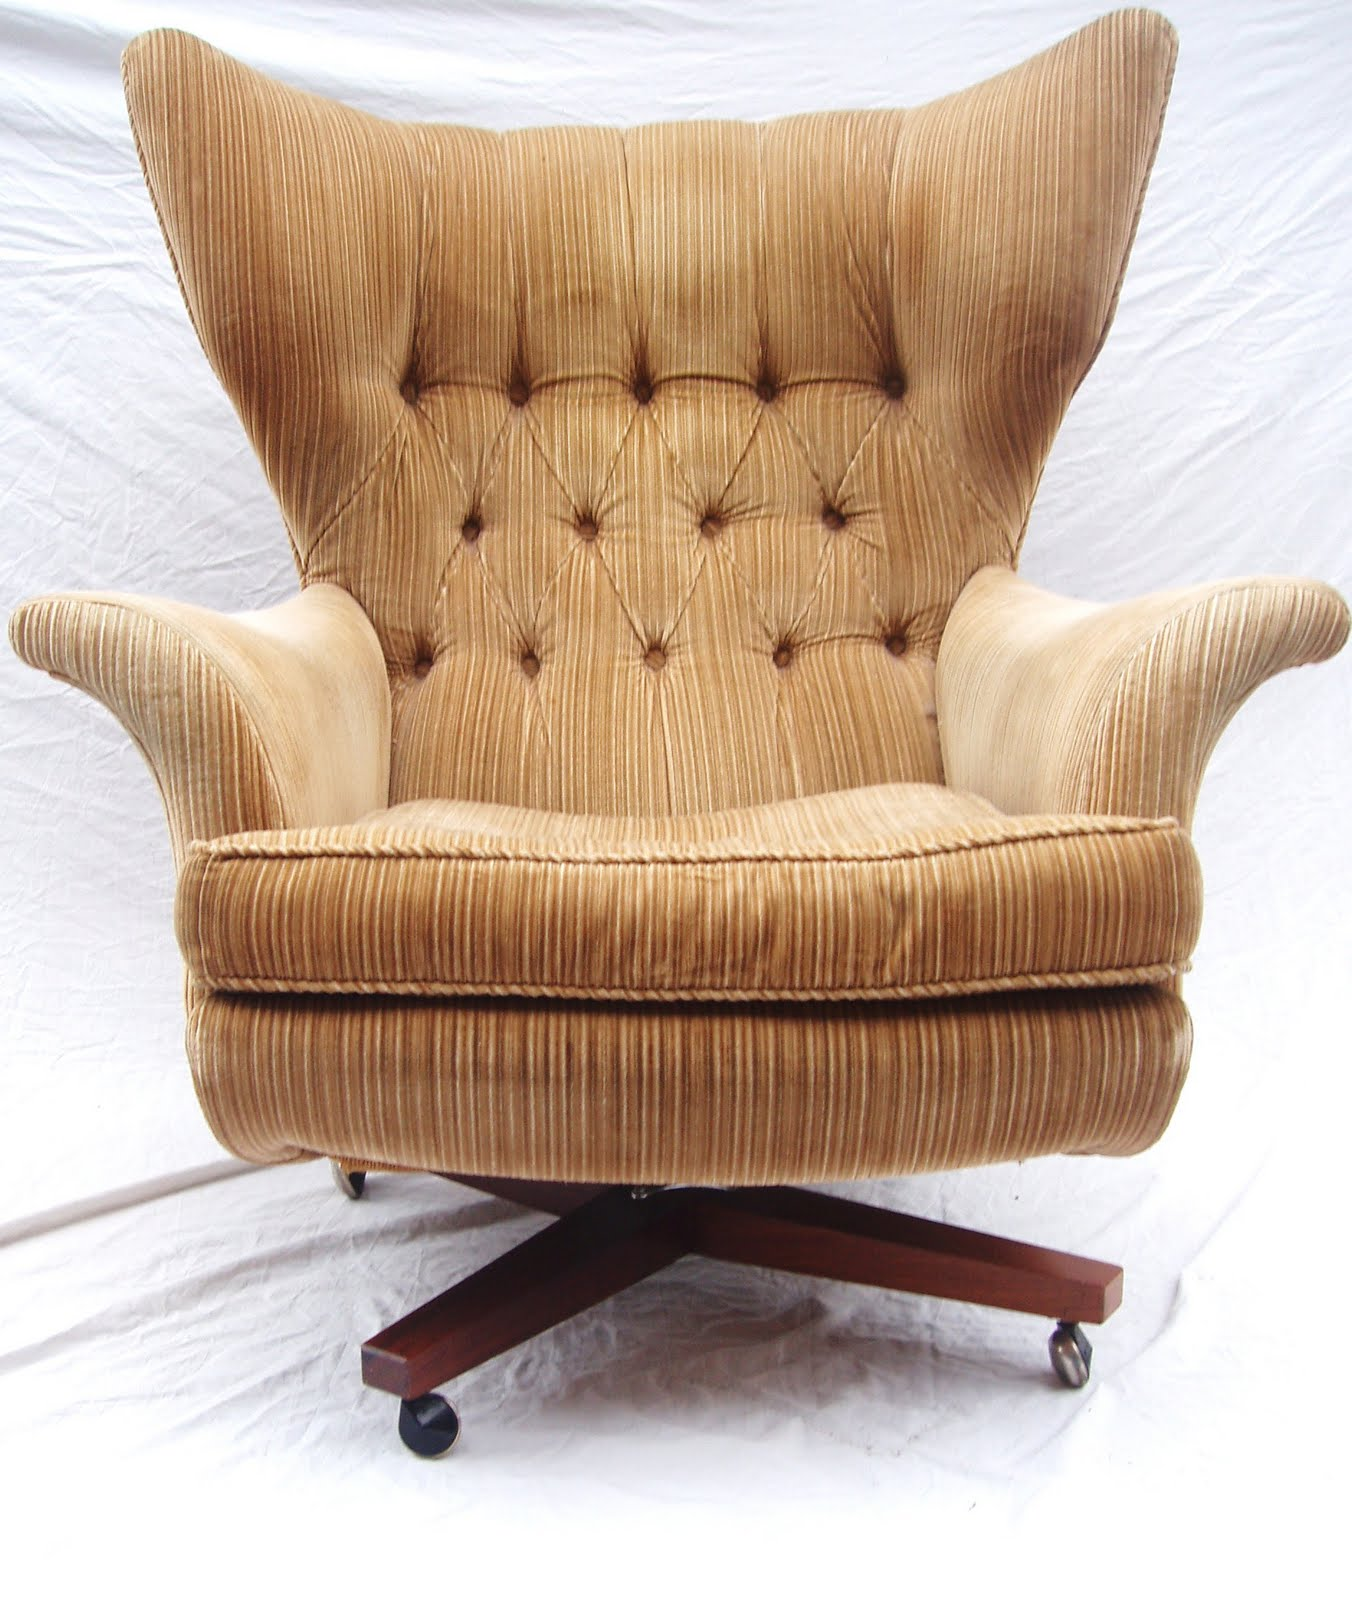 Most Comfortable Chair The Most Comfortable Chair In The World